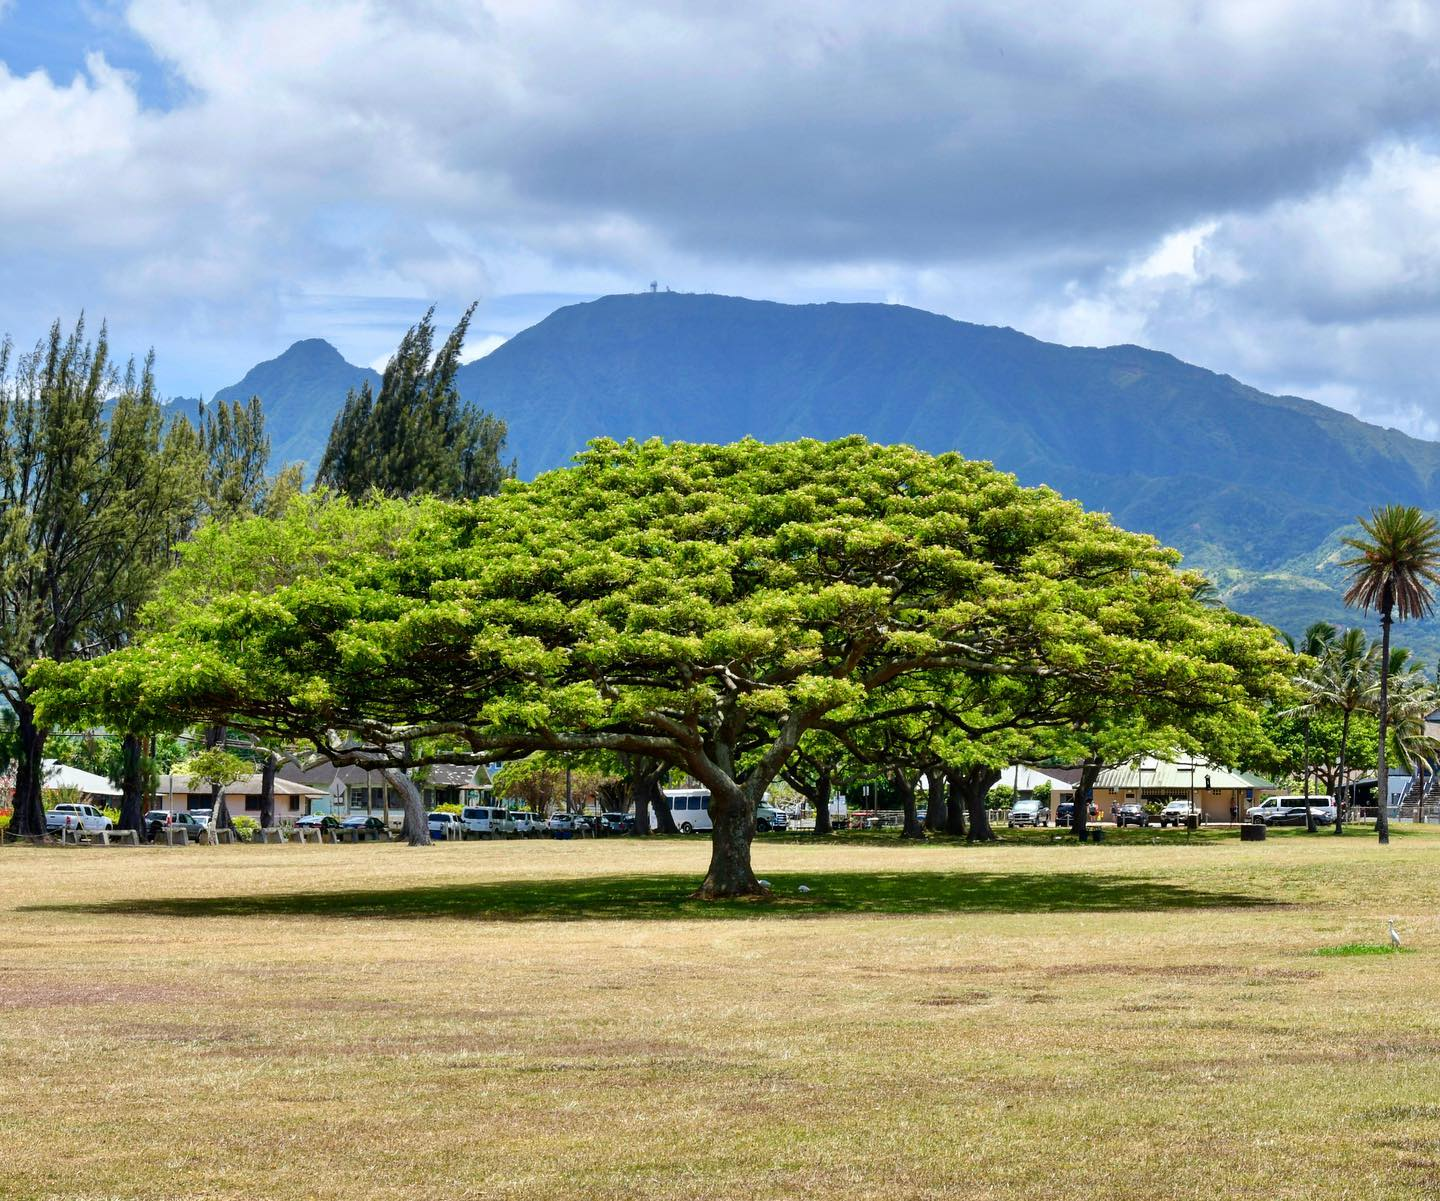 Haleiwa Ali'i Beach Park, Oahu, Hawaii Rain Trees, Banyan Trees... Oahu's trees are so beautiful. #usa #us #ustrip #ustravel #usatravel #usatrip #hawaii #oahu #oahuhawaii #travelphotography #reisefotografie #reiseliebe #travellover #nature #naturelovers #naturephotography #raintree #aliibeach #haleiwa #traveladdict #beautifultree #travelgram #hawaiigram #travelblog #travelblogger #reiseblog #reiseblogger #reiseblogger_de #instatravel